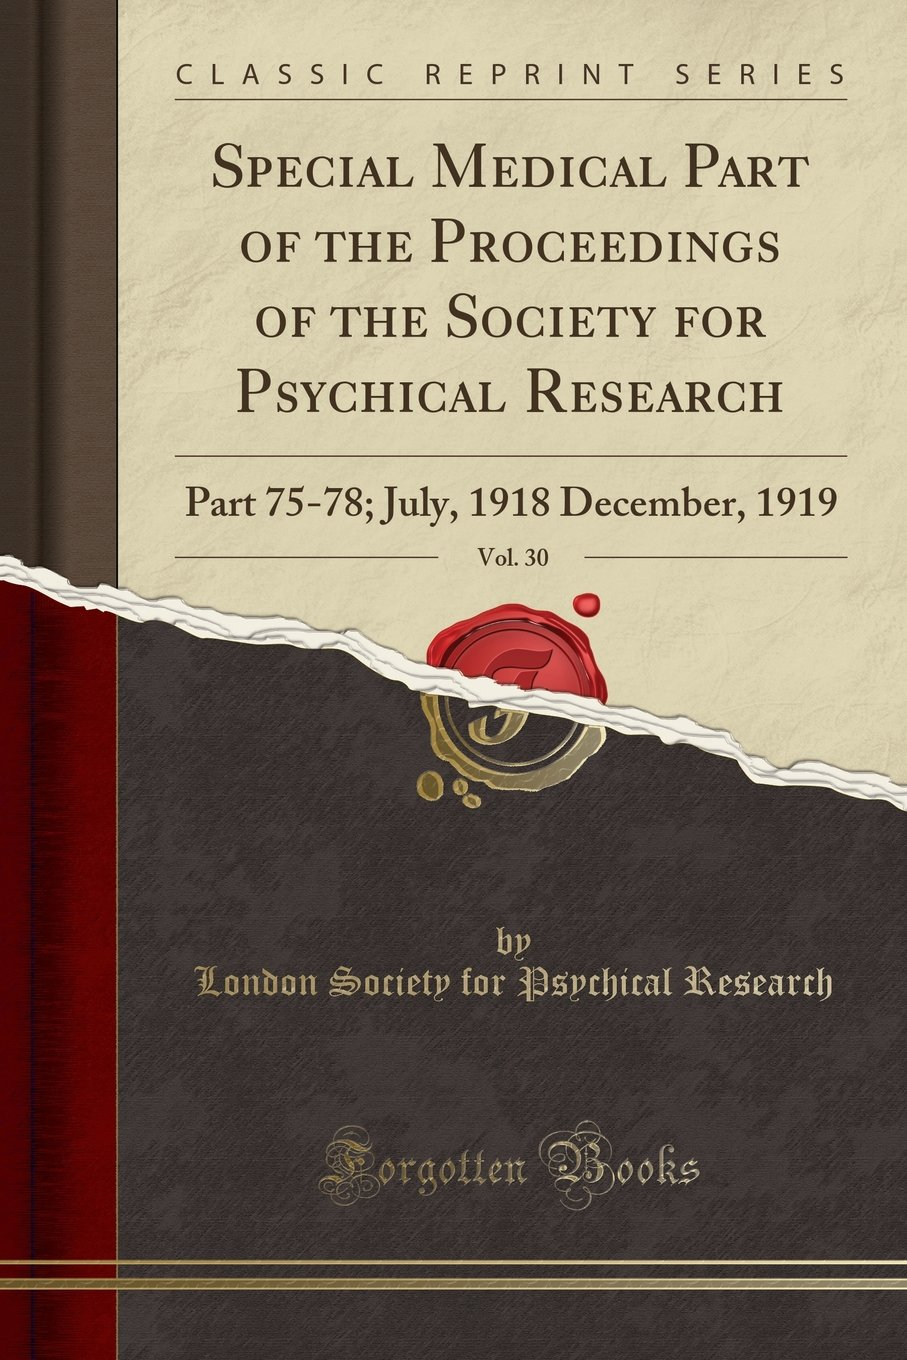 Special Medical Part of the Proceedings of the Society for Psychical Research, Vol. 30: Part 75-78; July, 1918 December, 1919 (Classic Reprint) pdf